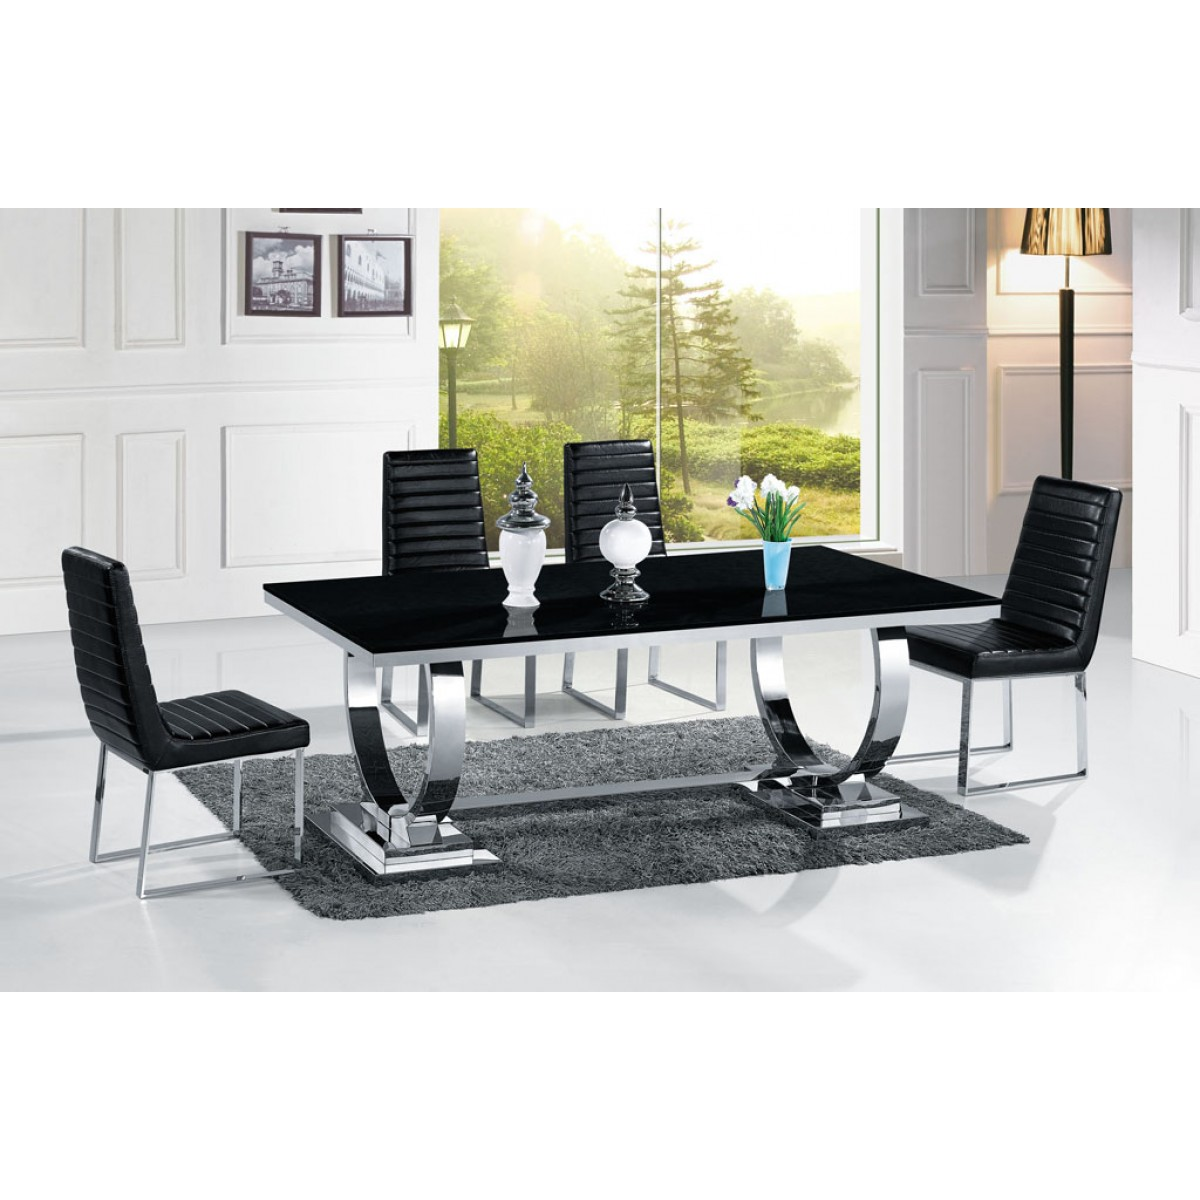 Table de salle manger en inox venezia mabre ou verre for Salle a manger design but